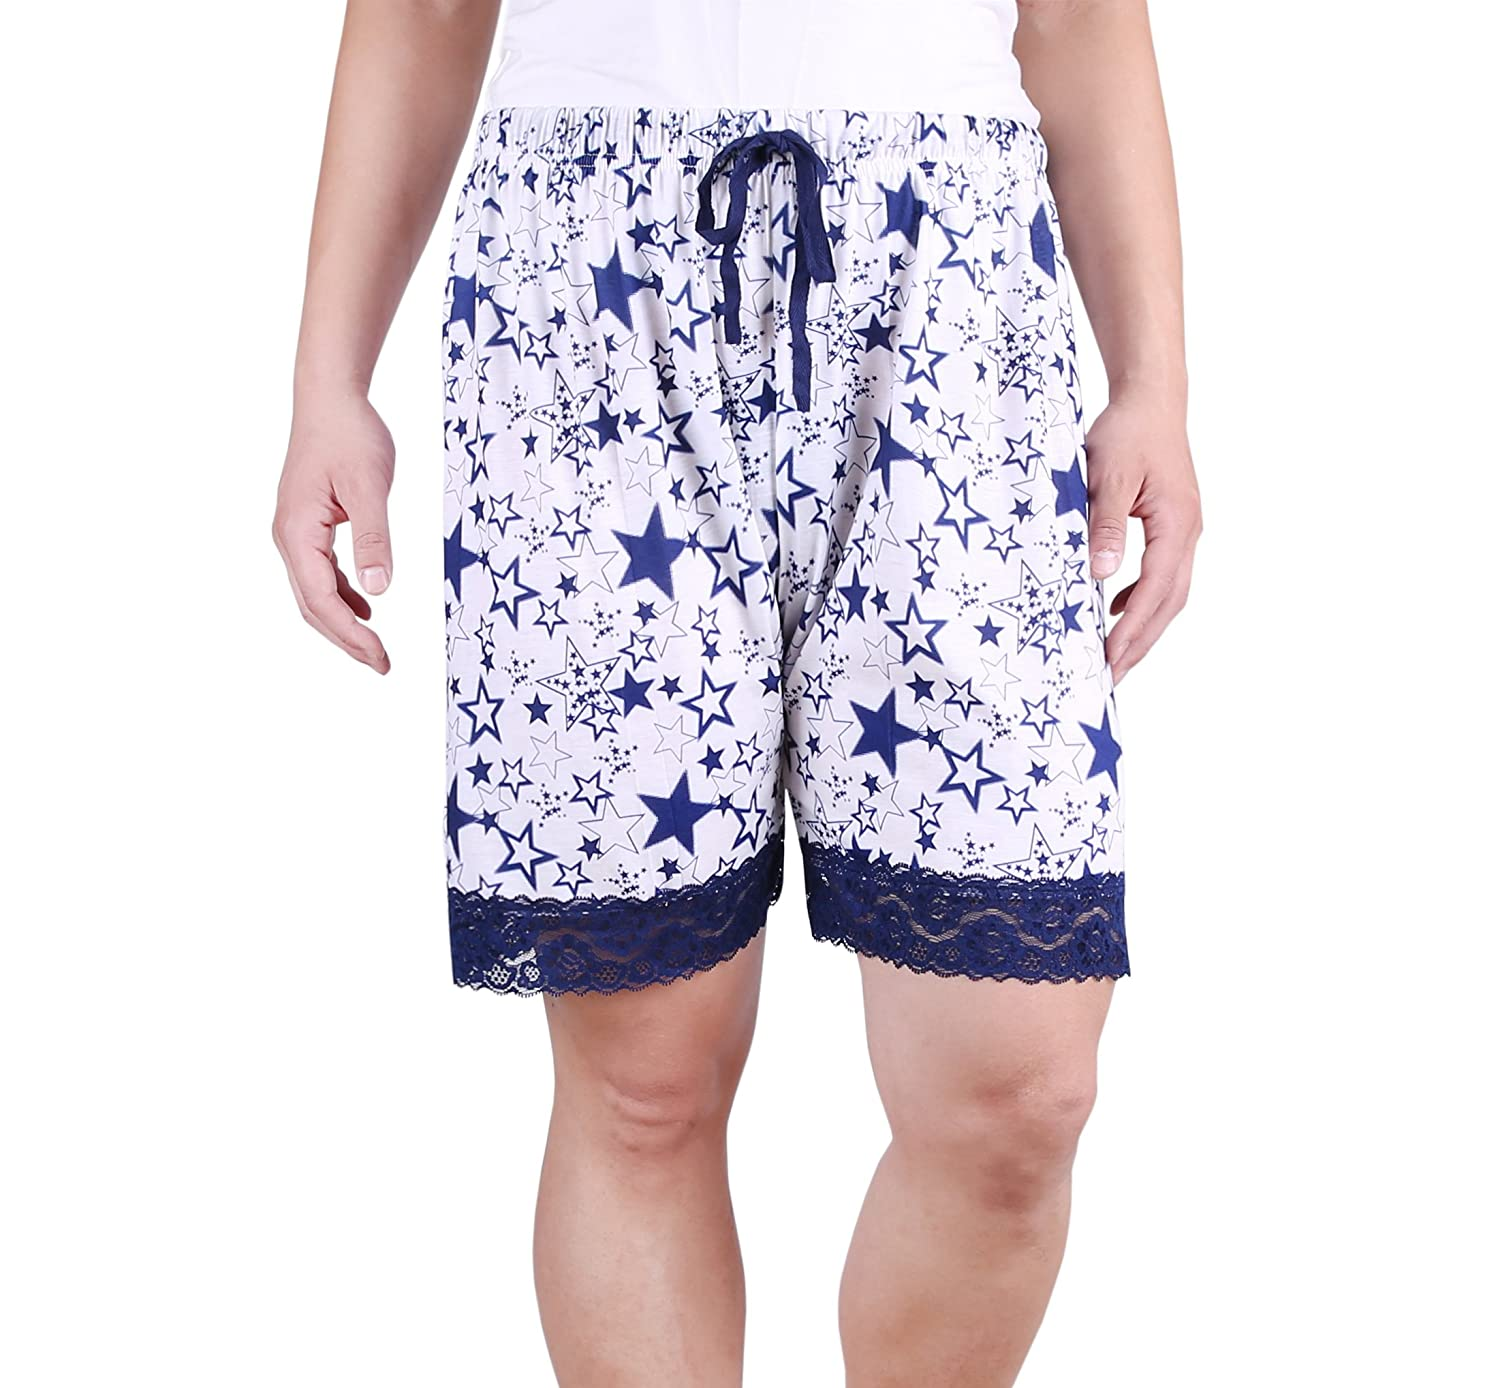 ZERDOCEAN Women's Plus Size Printed Sleep Shorts Pajamas with Lace Trim Sleep-Shorts-ss01-2X